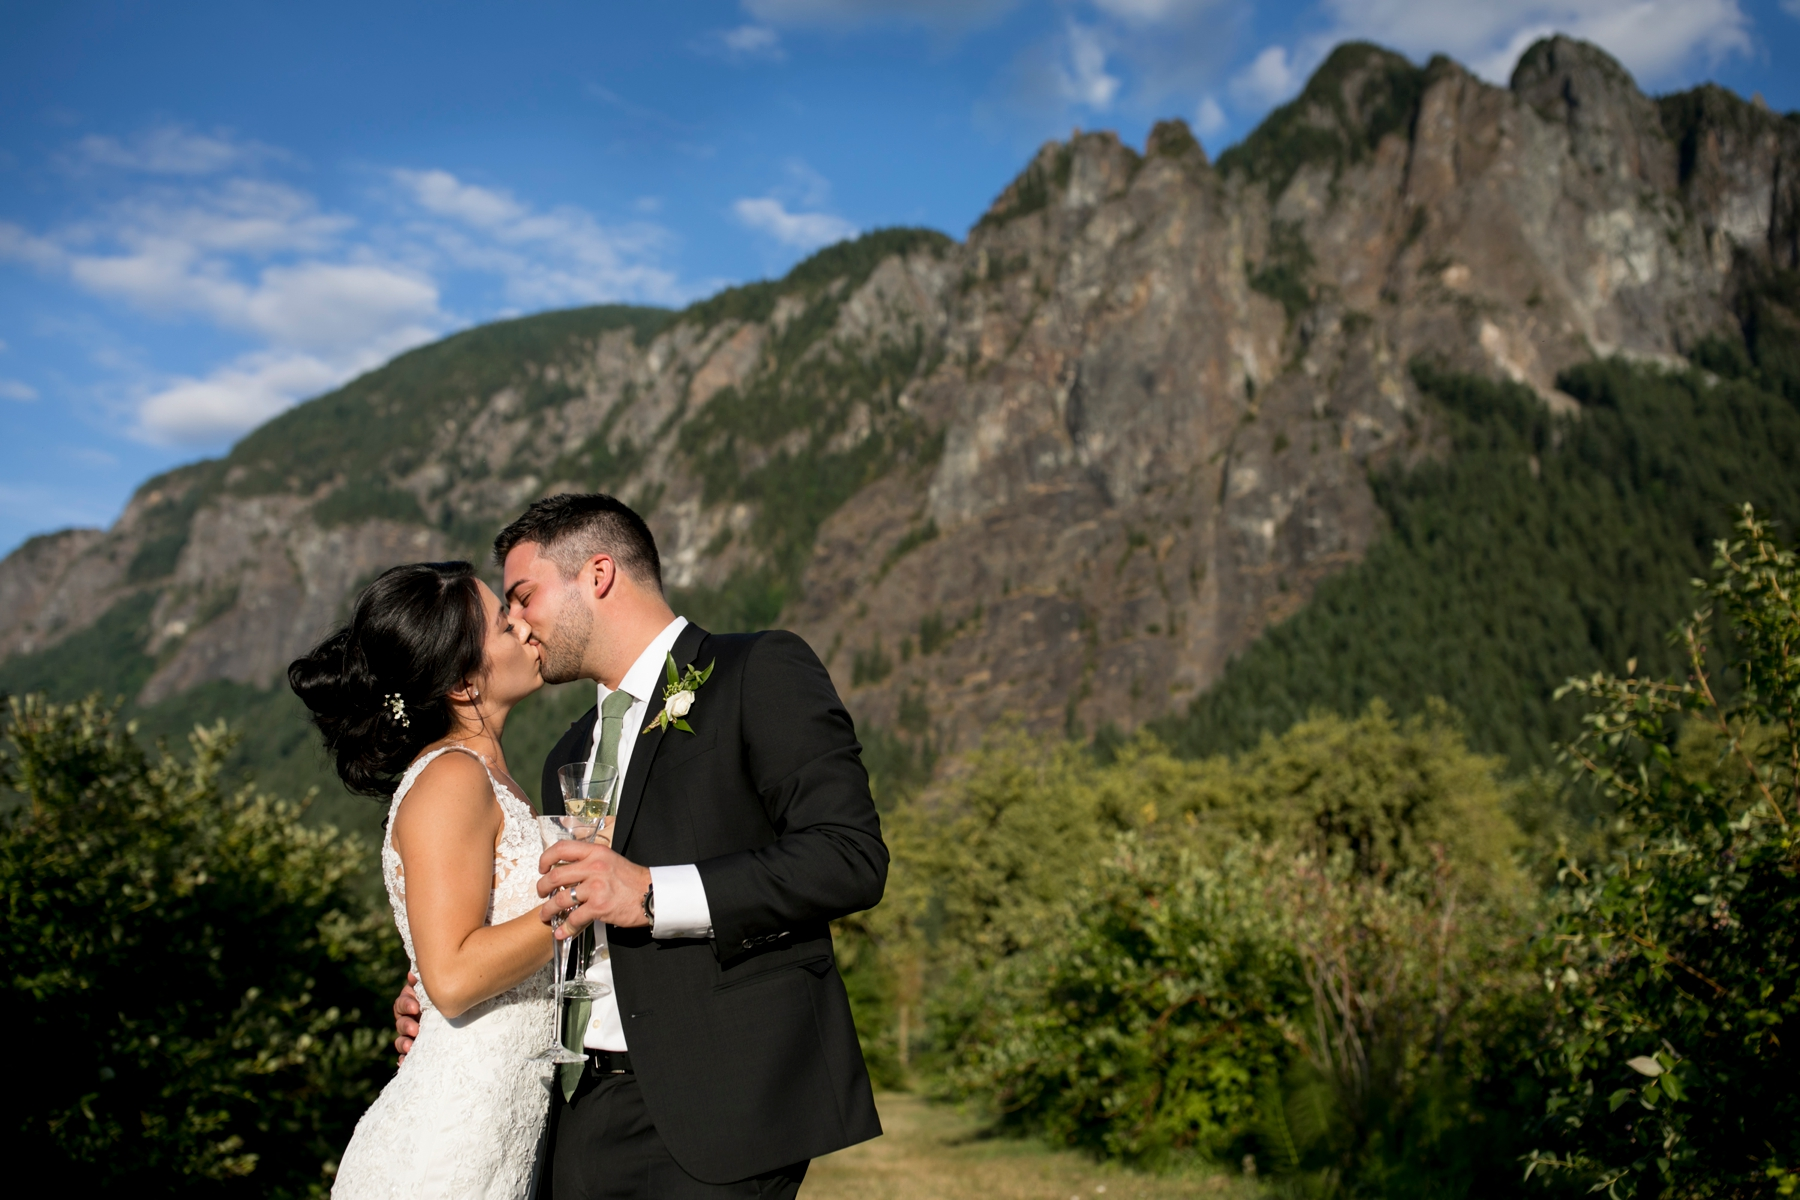 seatte, wedding, photographer, North Bend, Bybee Farms, Snoqualmie, issaqua,_0079.jpg